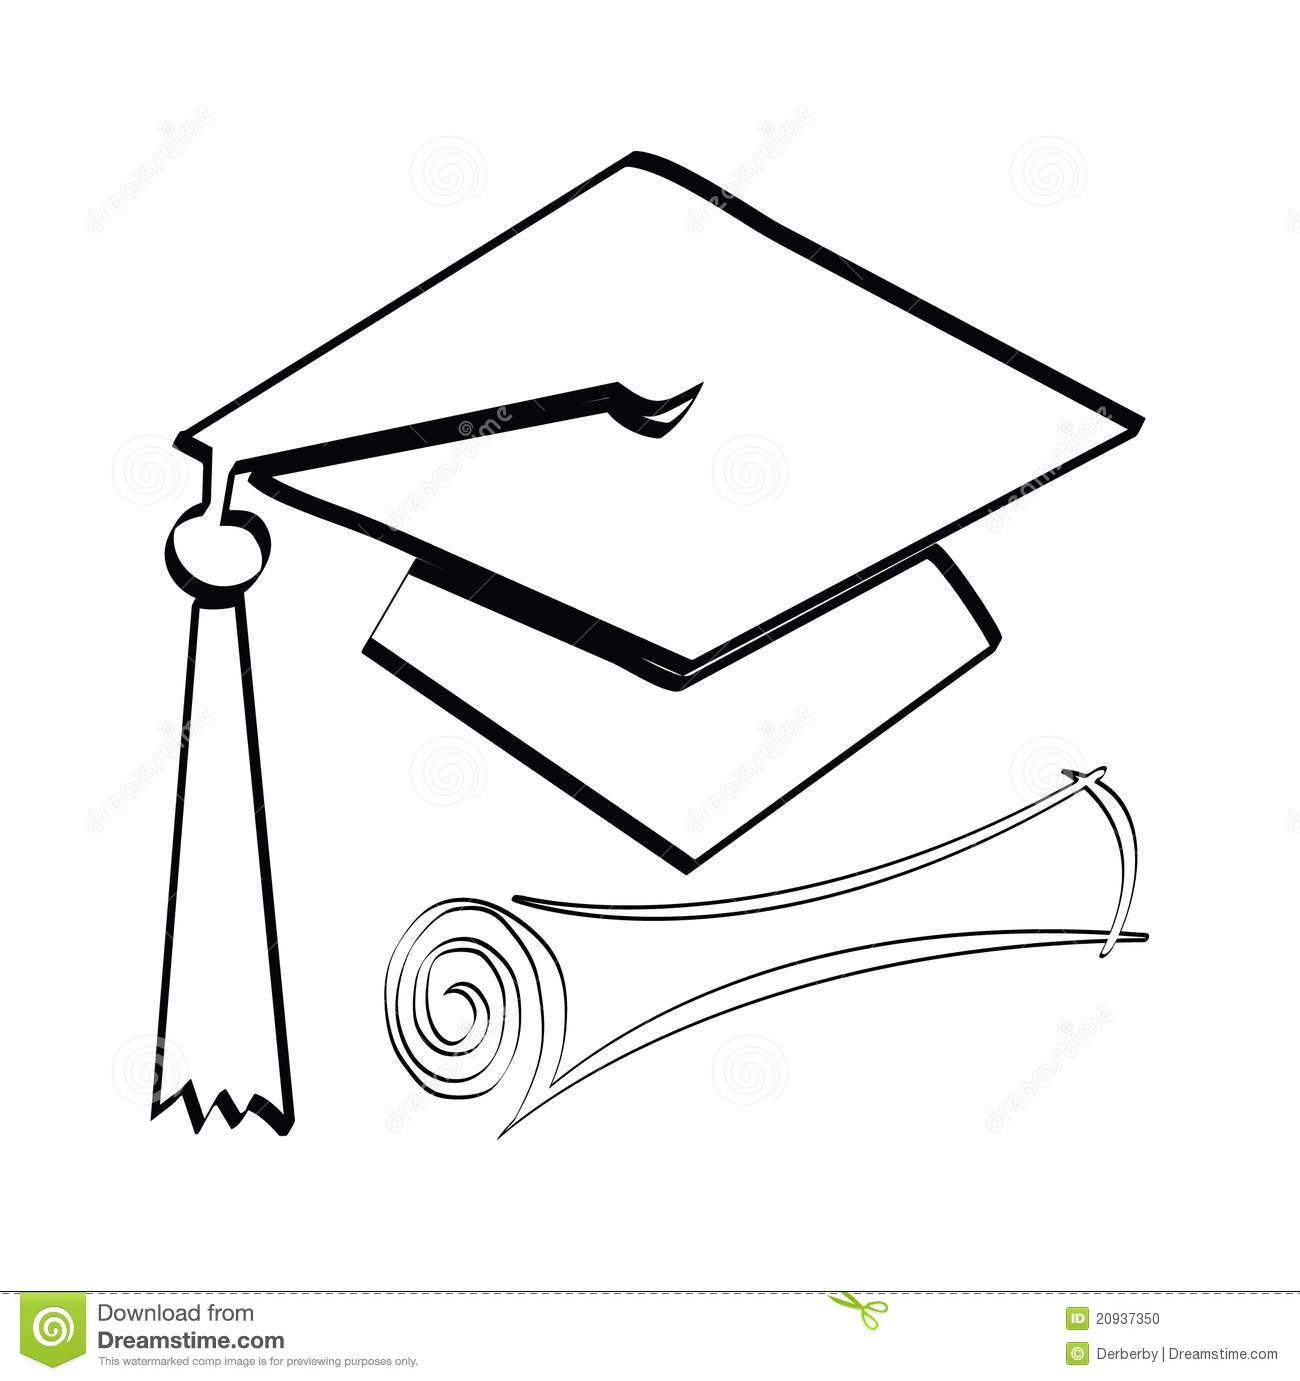 Graduation diploma and cap on a white background.